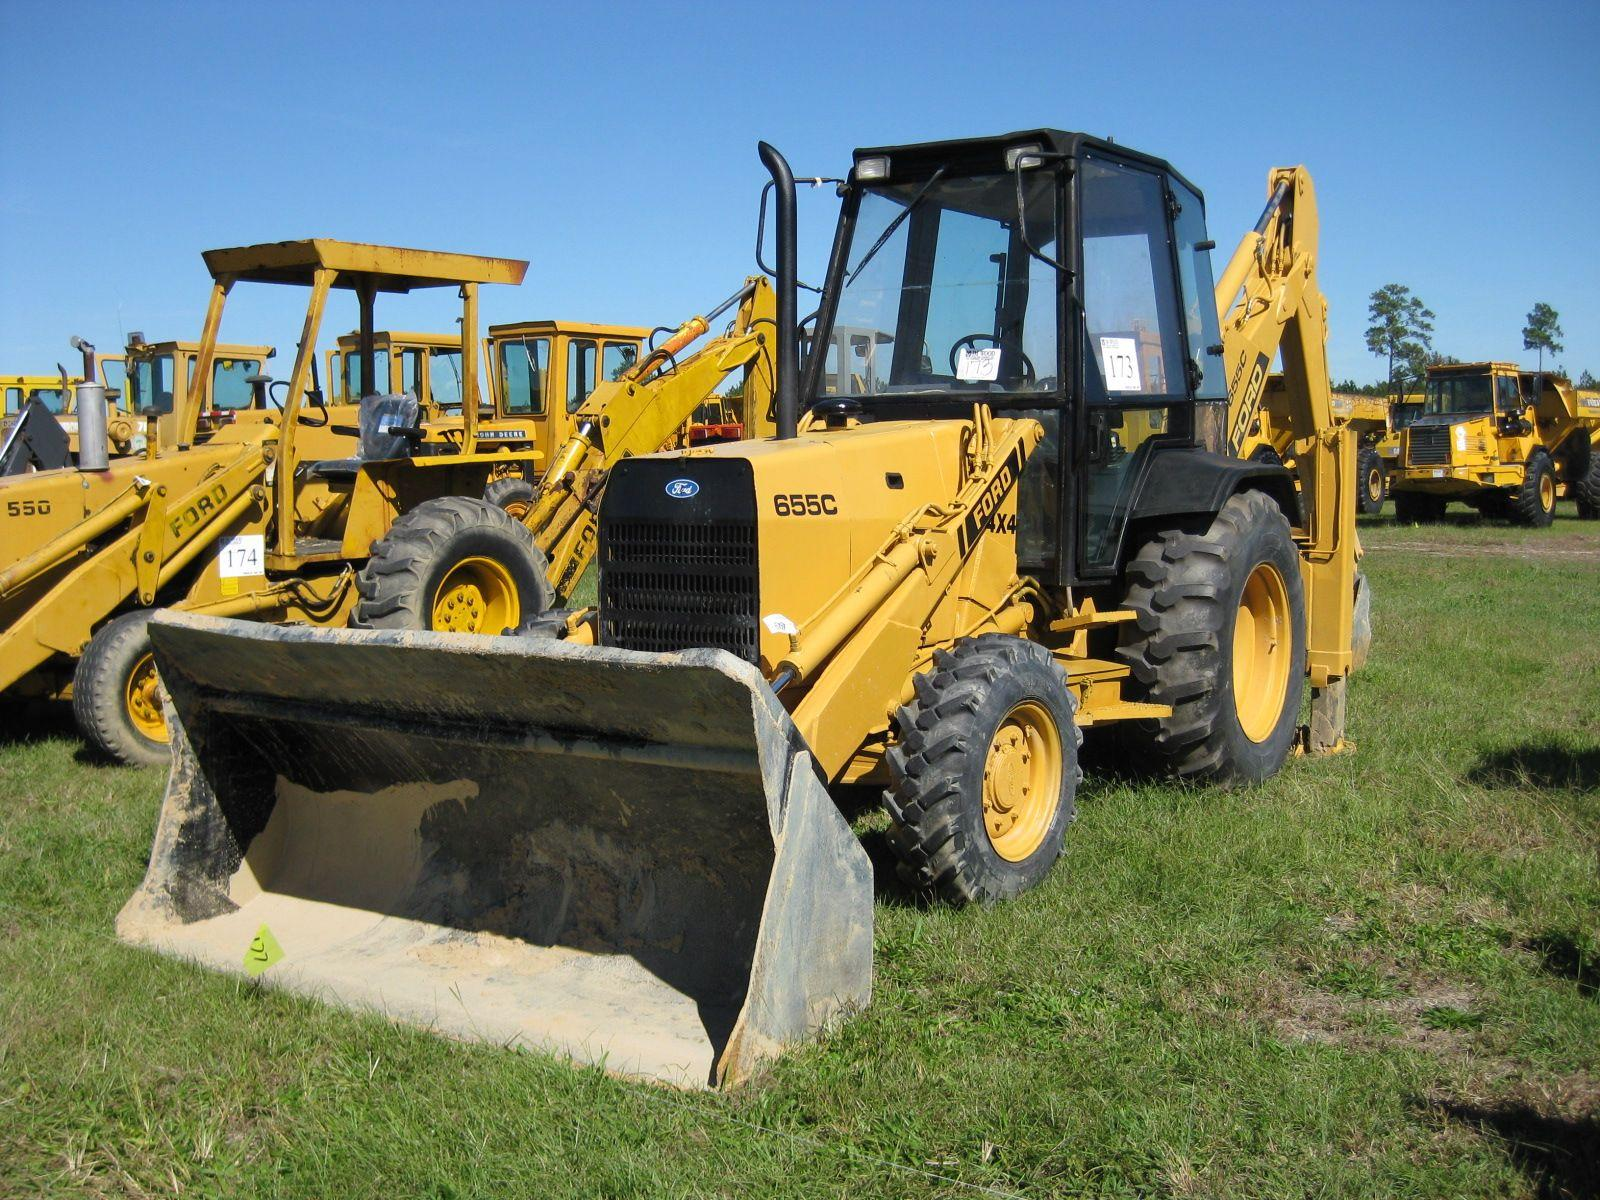 1996 Ford 655d Backhoe Wiring Diagram Simple Options 655c 655a